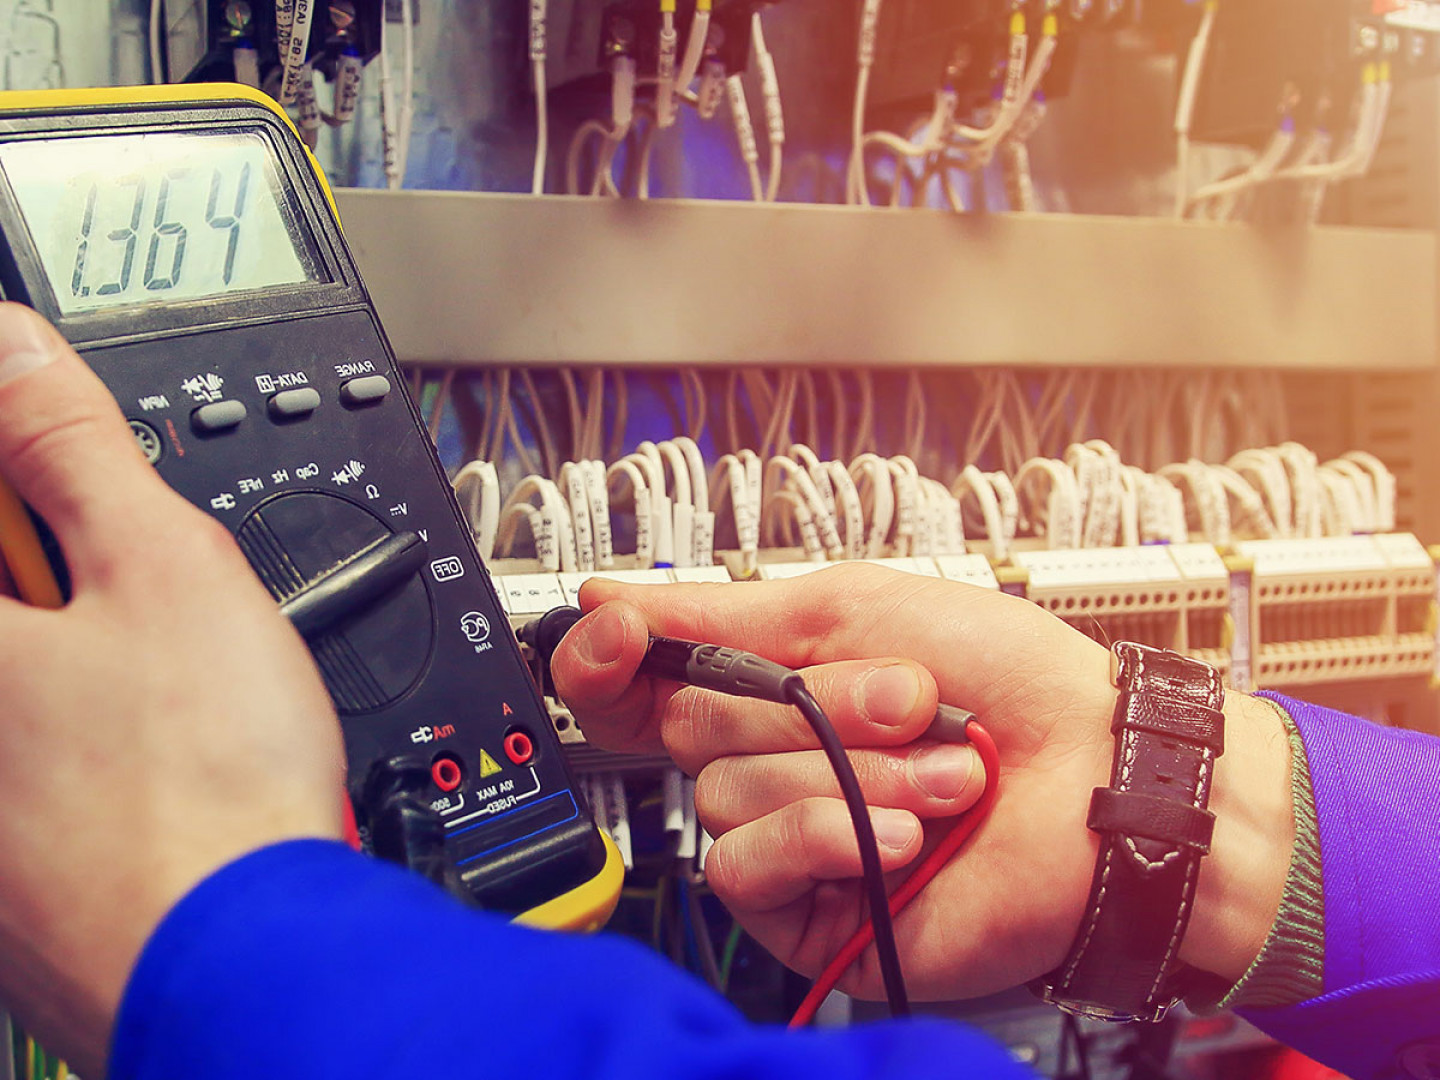 Make Sure Your Company's Electrical System Is Up to Code